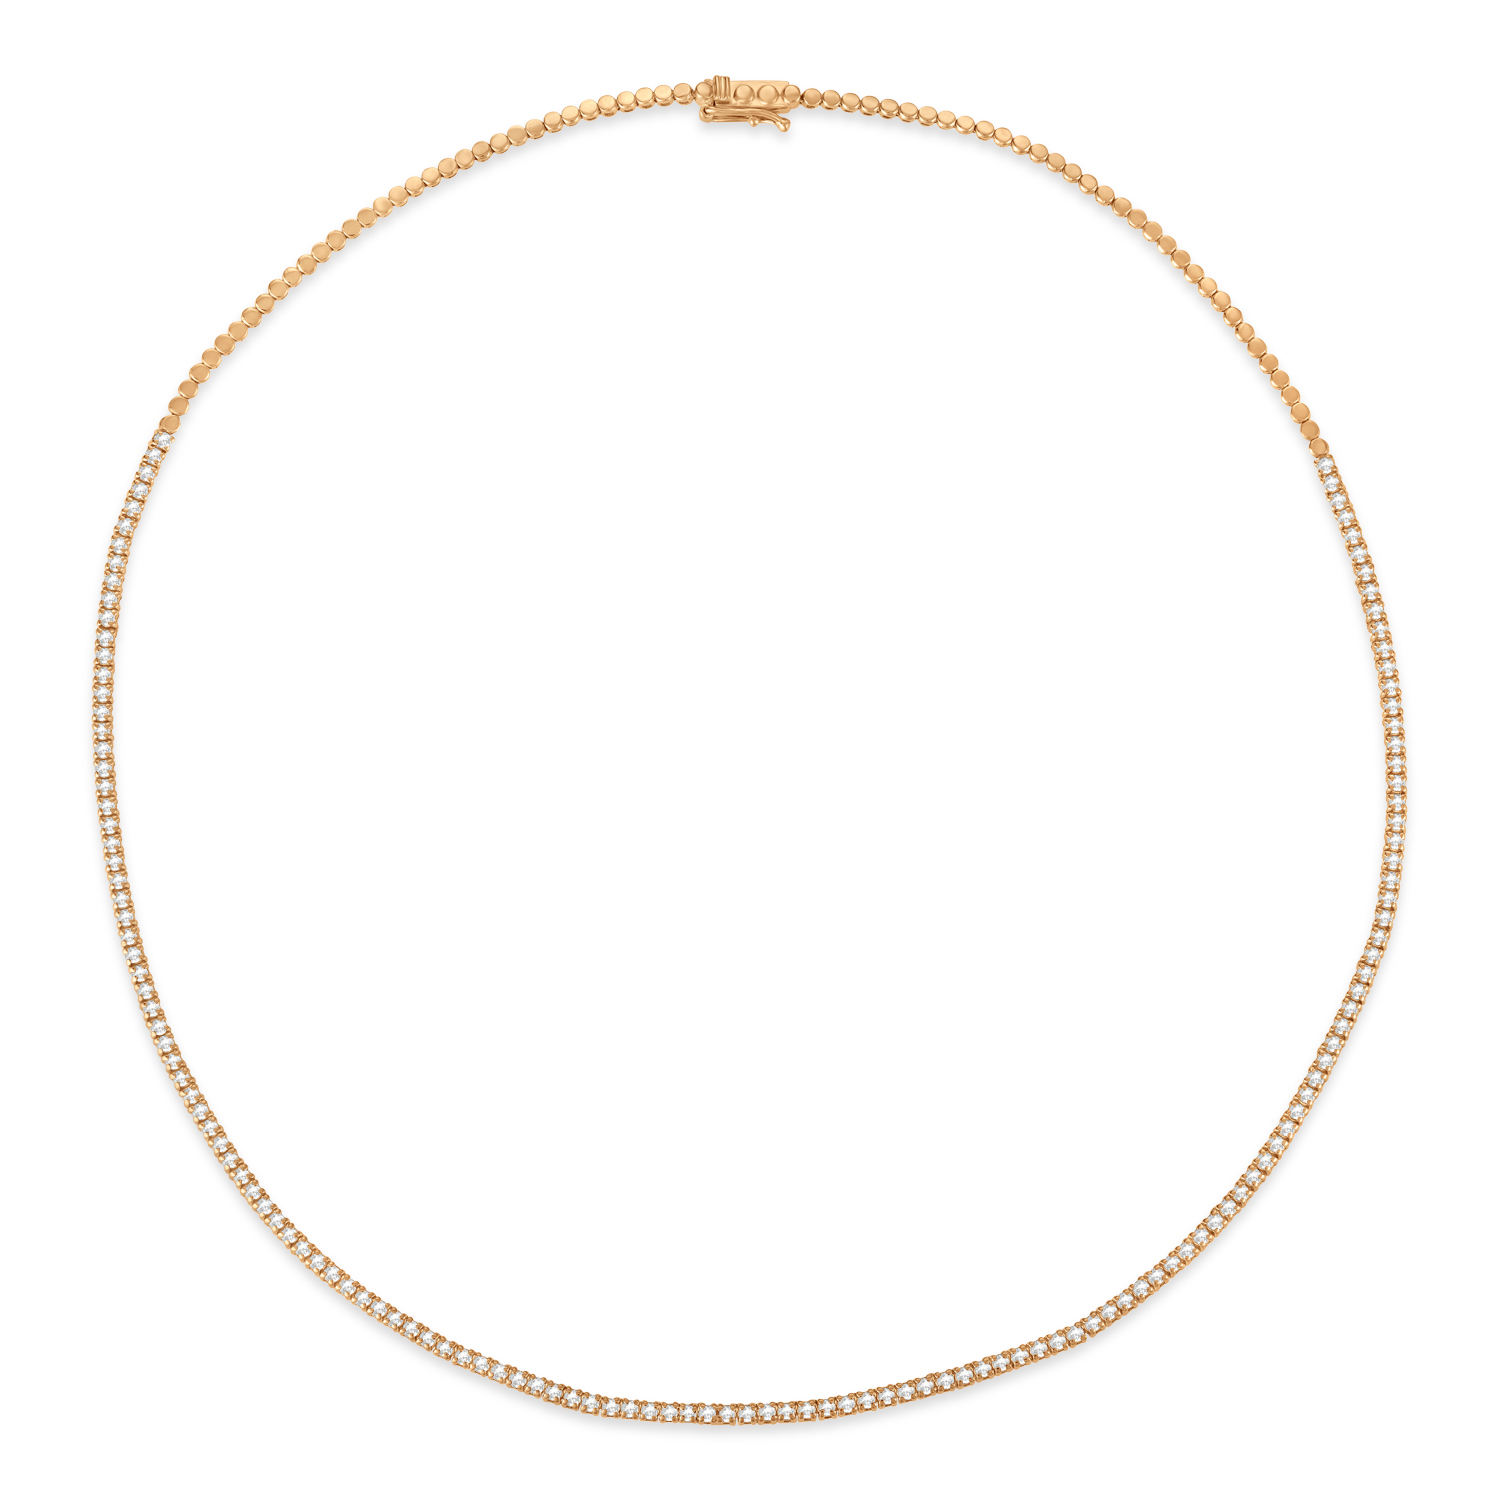 Diamond Tennis Choker Necklace for Women in 14k Rose Gold (2.00 ctw)